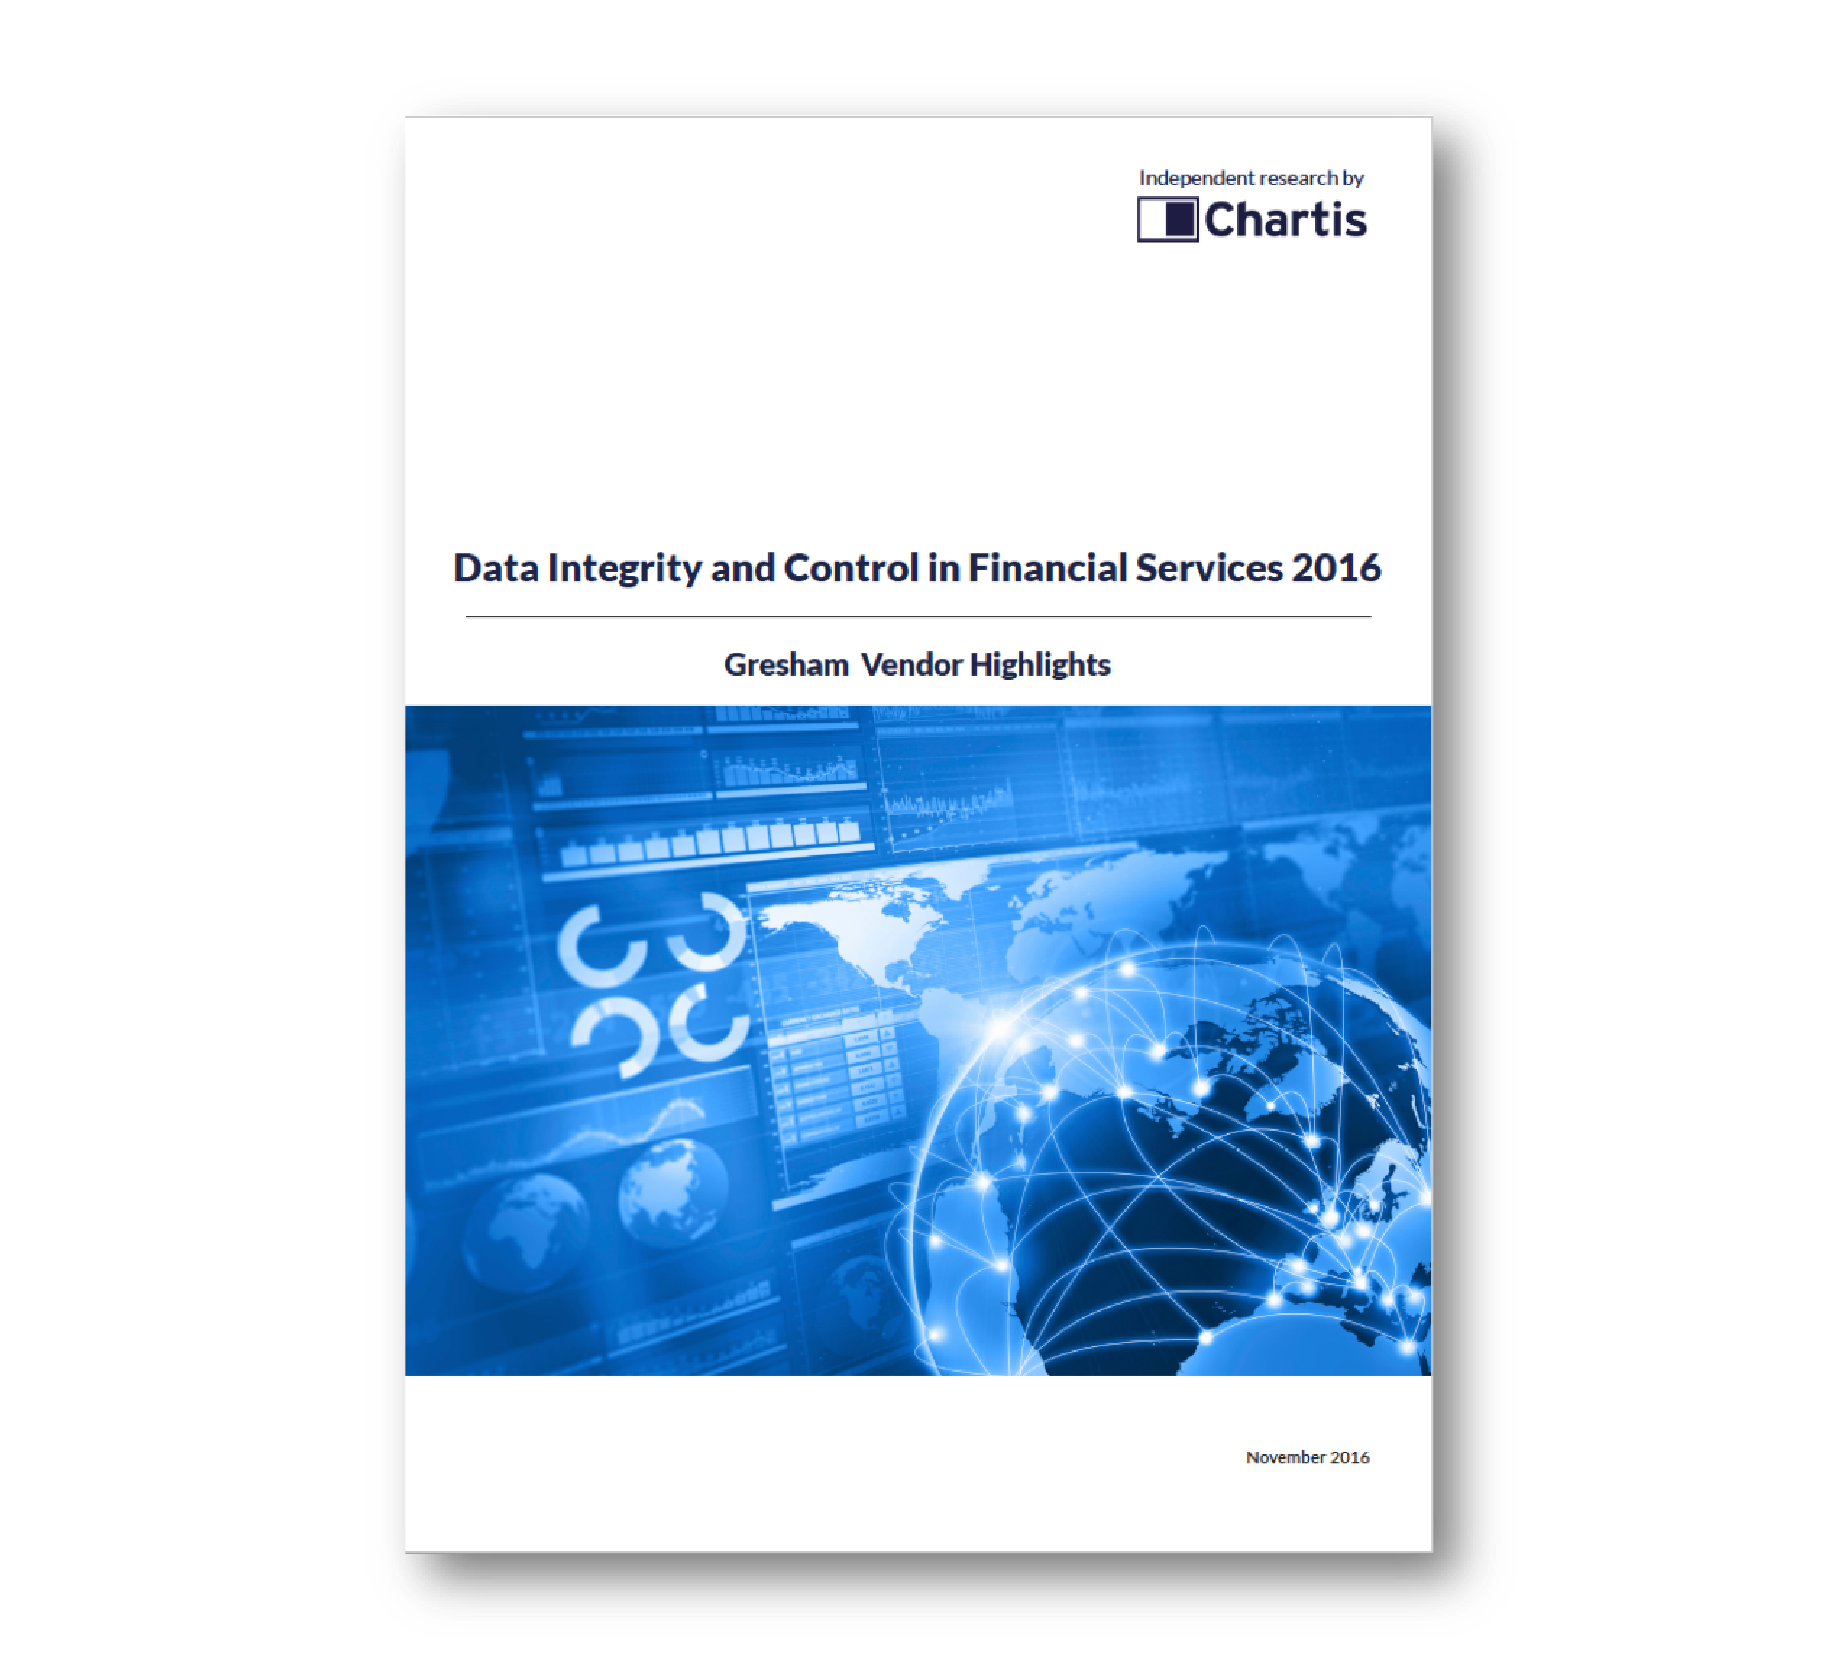 Chartis: Data Integrity and Control in Financial Services 2016